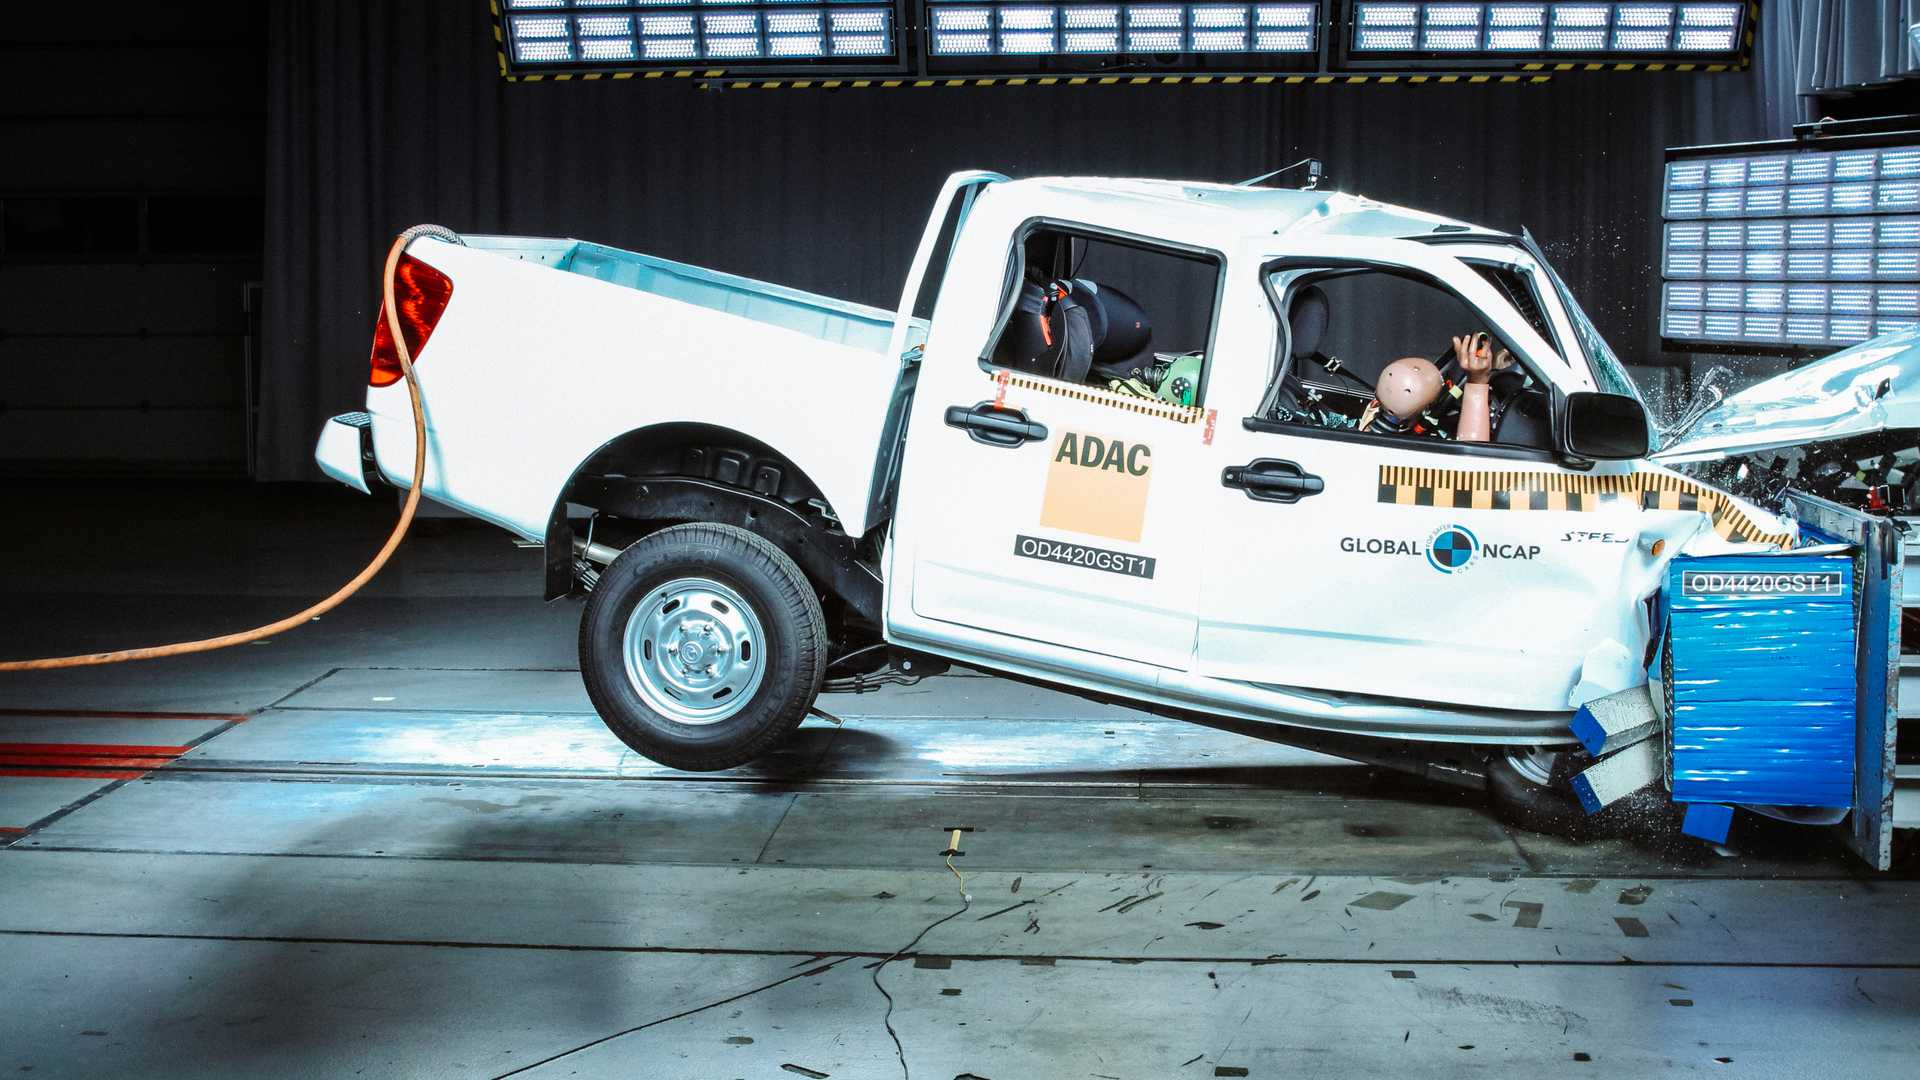 Great Wall Steed 5 Without Airbags And ABS Gets 0 Stars In Crash Test